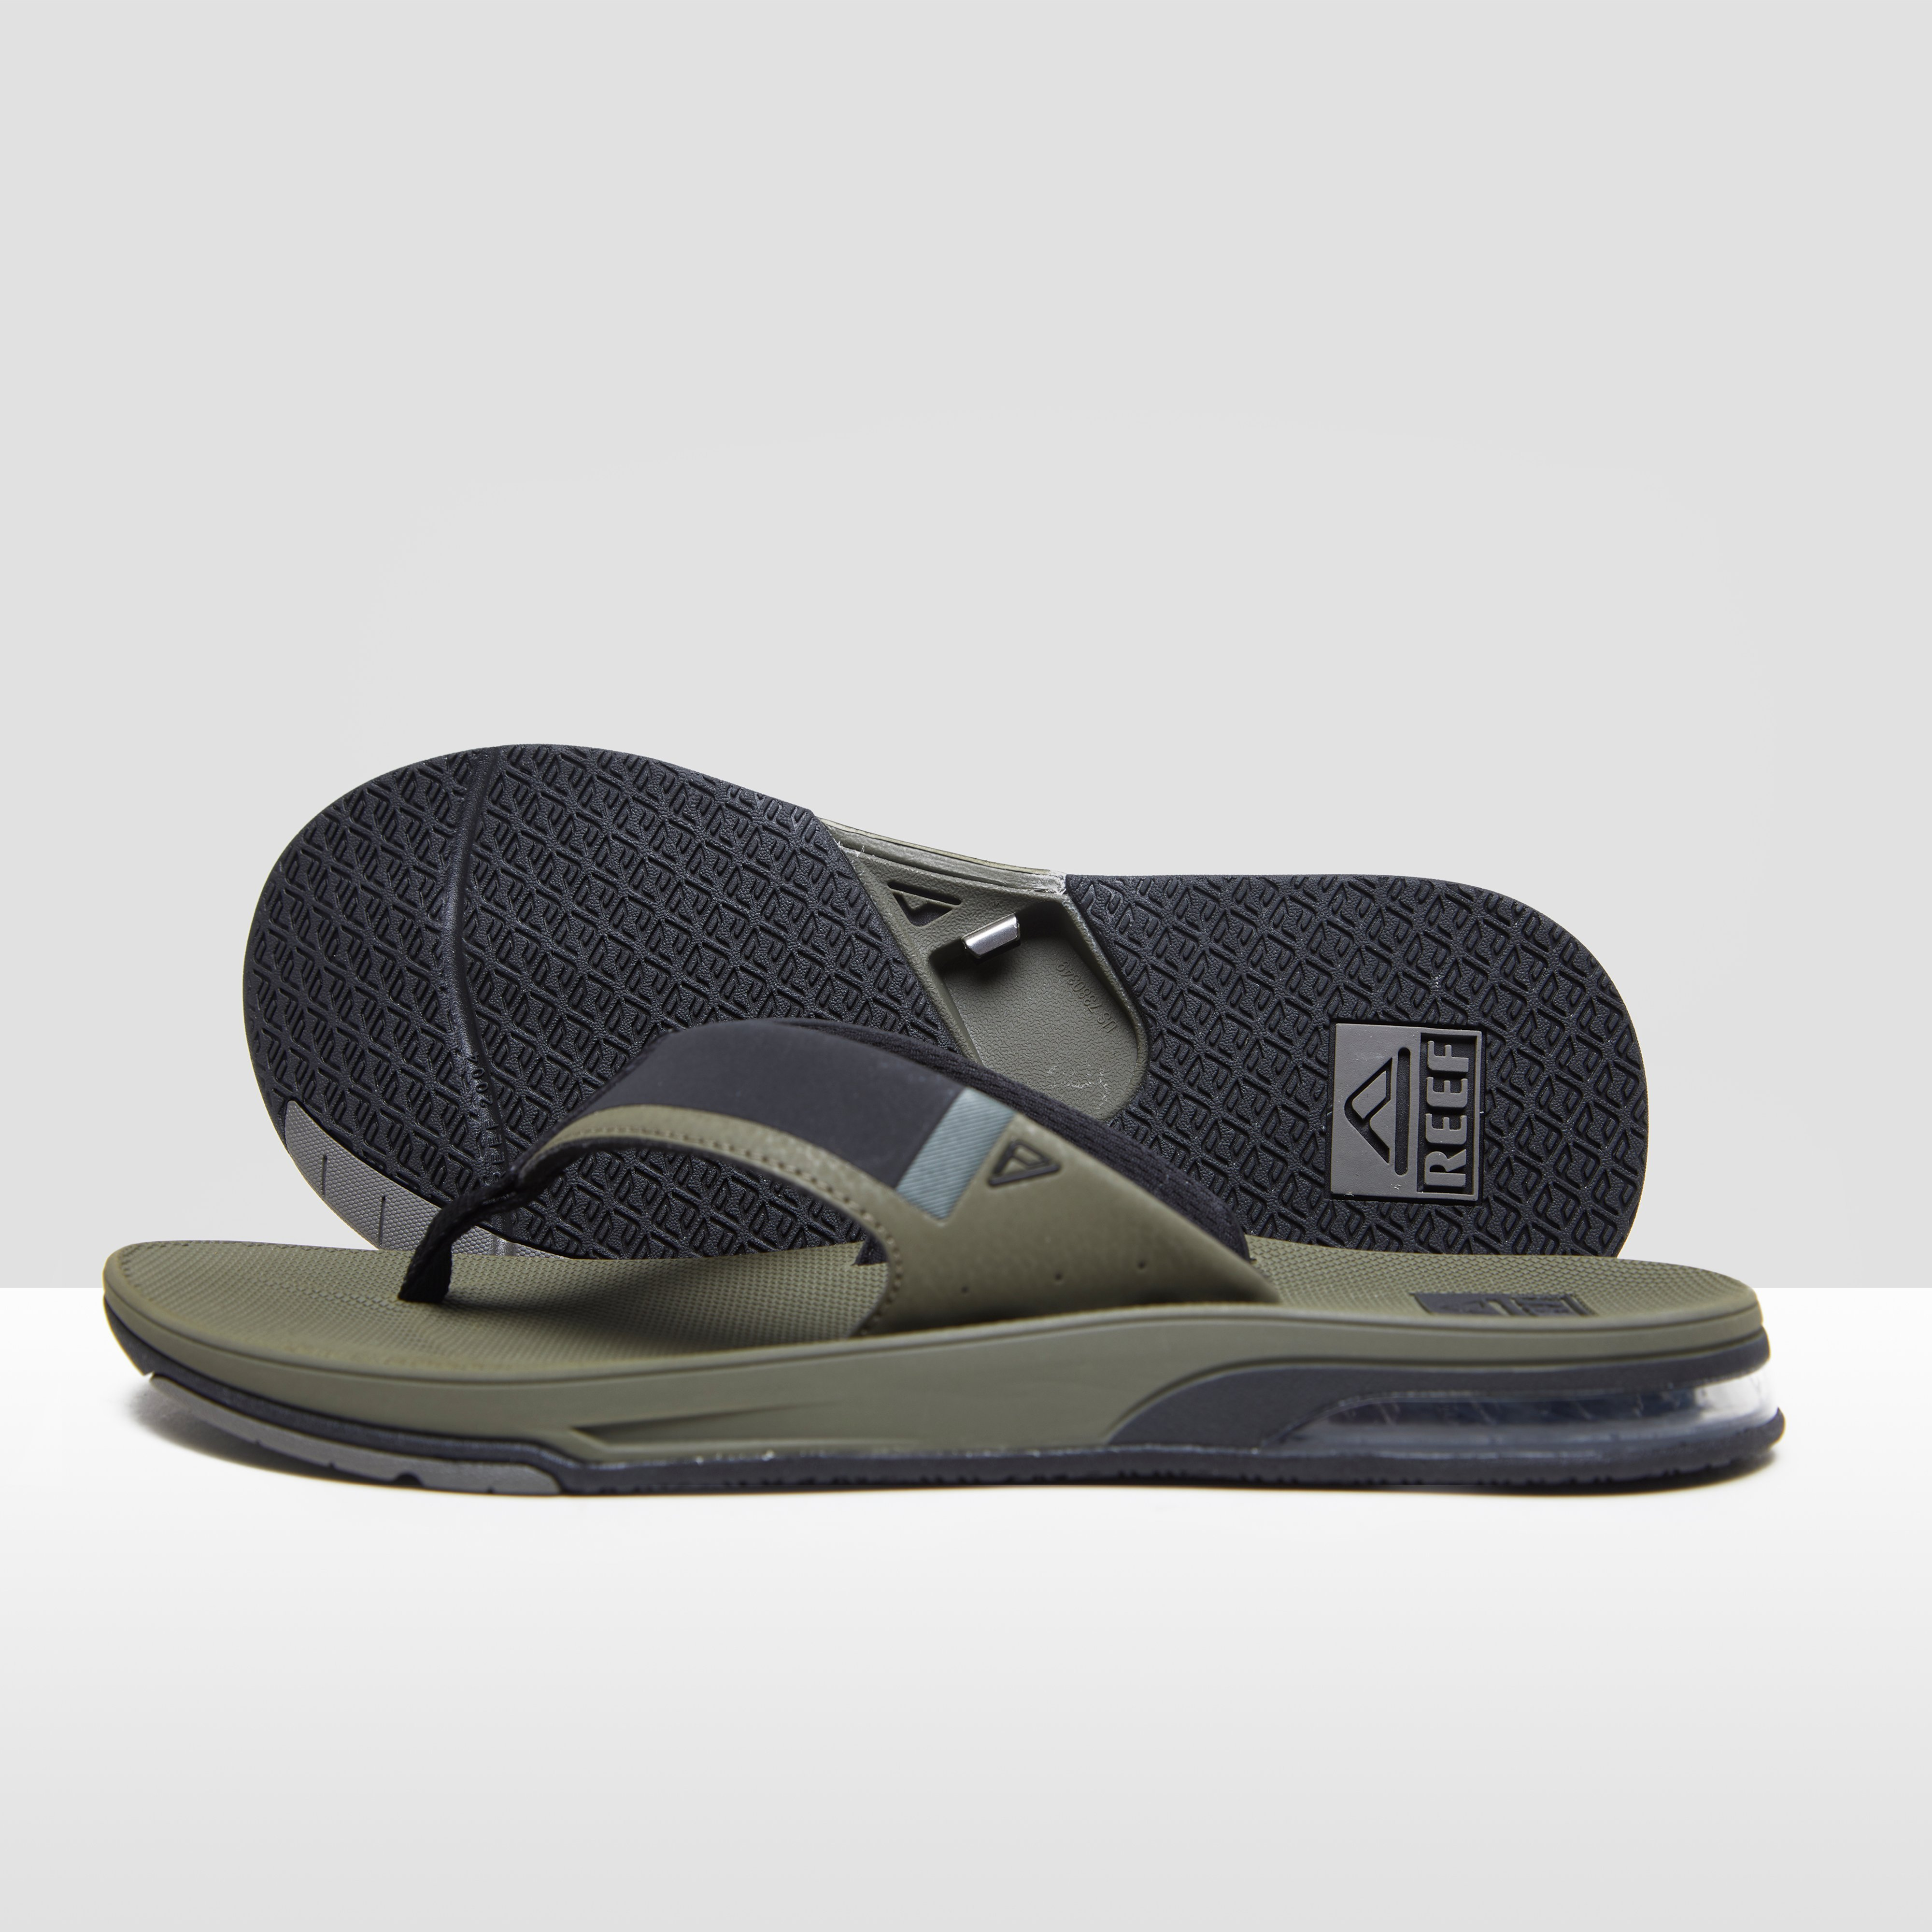 REEF FANNING 2.0 SLIPPERS GROEN HEREN Amazon Goedkope Online ttuAv